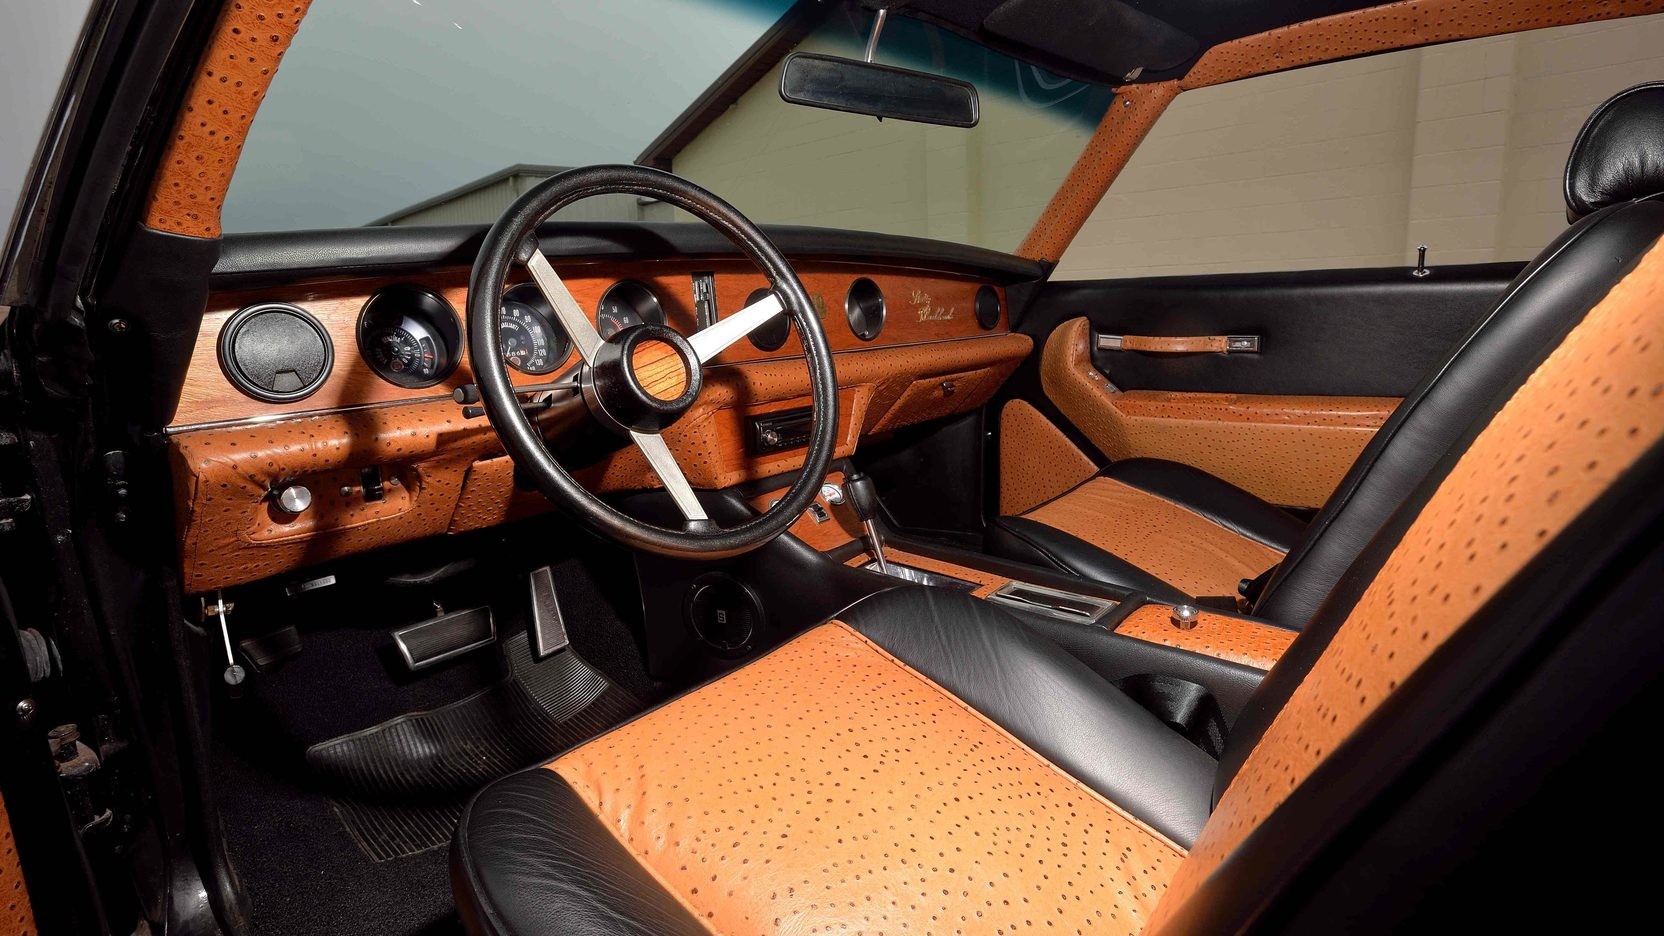 Leather seats are by Connelly, some of the interior metal trim was 24 carat gold. Carpets could be wool or mink. Dashboard wood could be bird's eye maple, burled walnut or redwood.